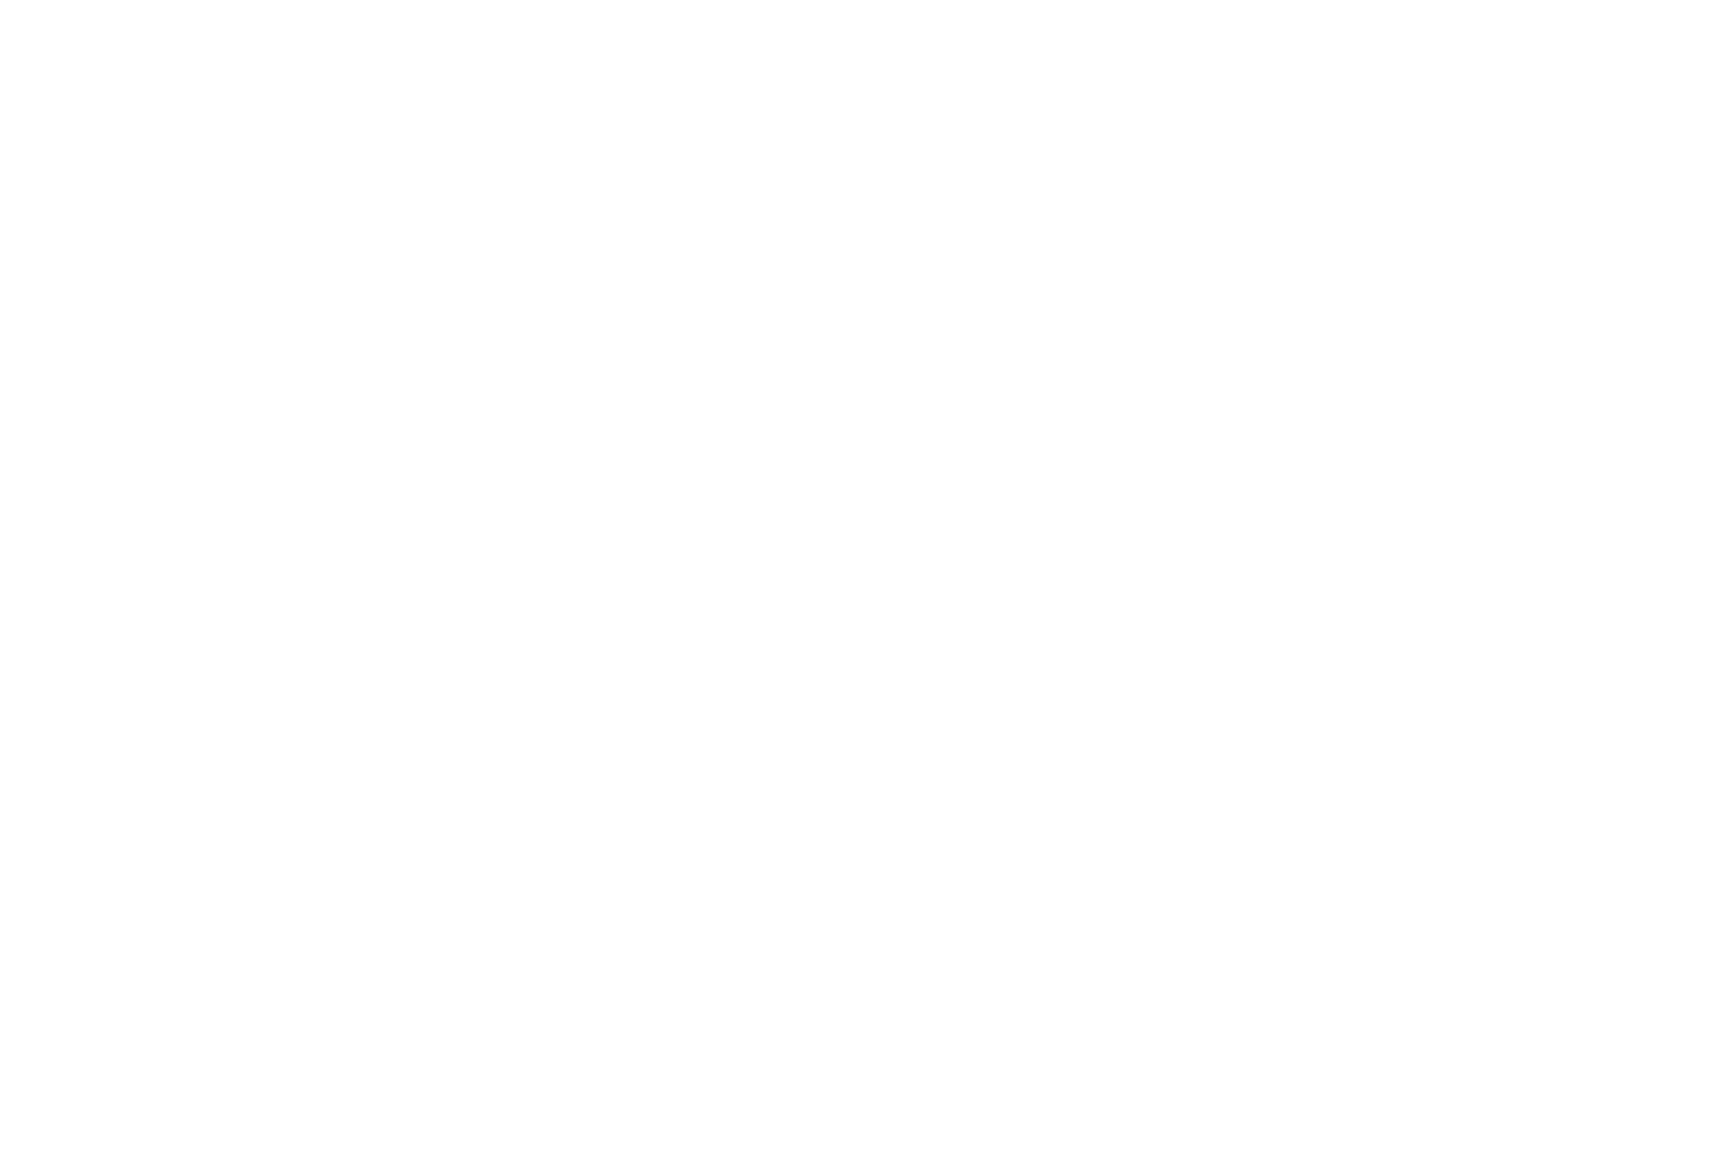 AWARD OF EXCELLENCE - BEST SHORT FILM  - HOLLYWOOD FILM COMPETITION 2016 (1).png